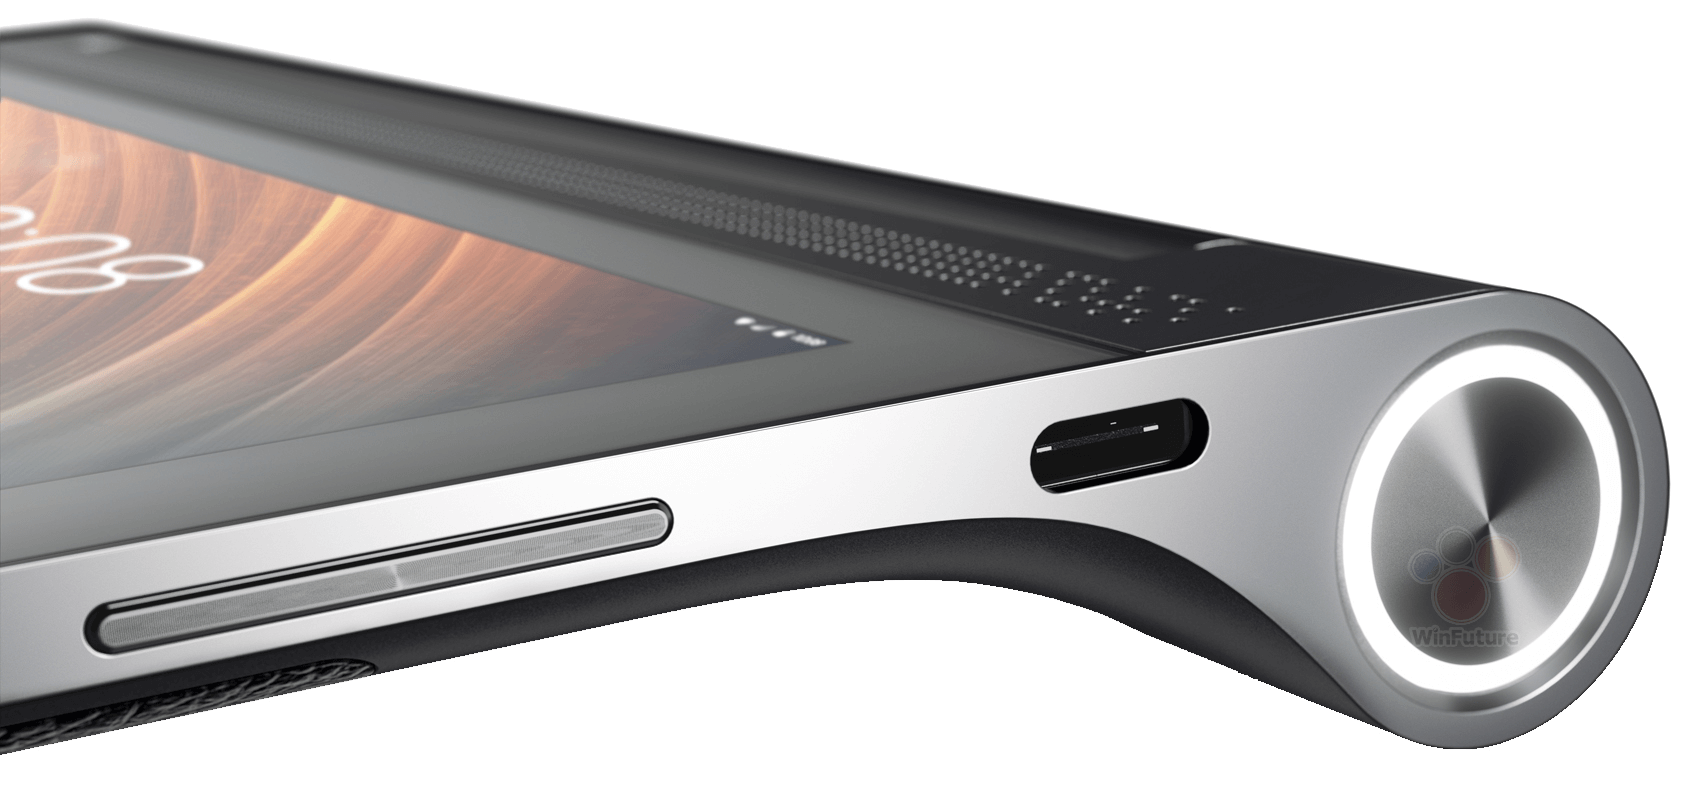 Lenovo Announces 13-inch Multifunctional Android Tablet 1